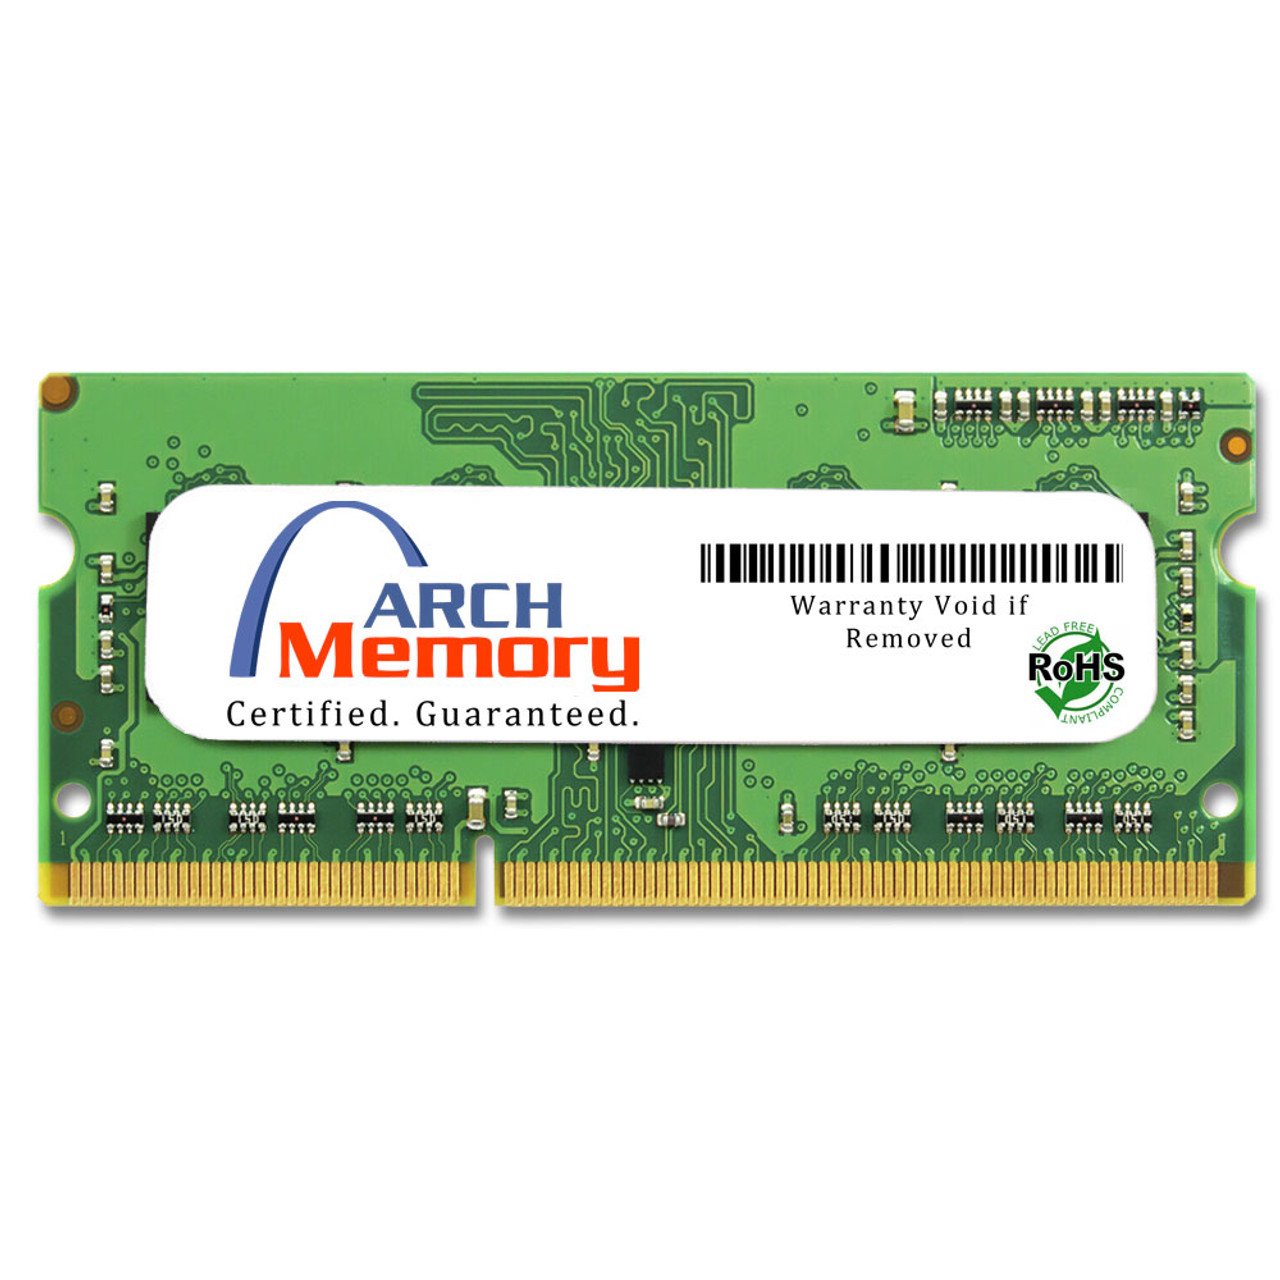 2GB 204-Pin DDR3-1333 PC3-10600 Sodimm (1Rx8) RAM | Arch Memory